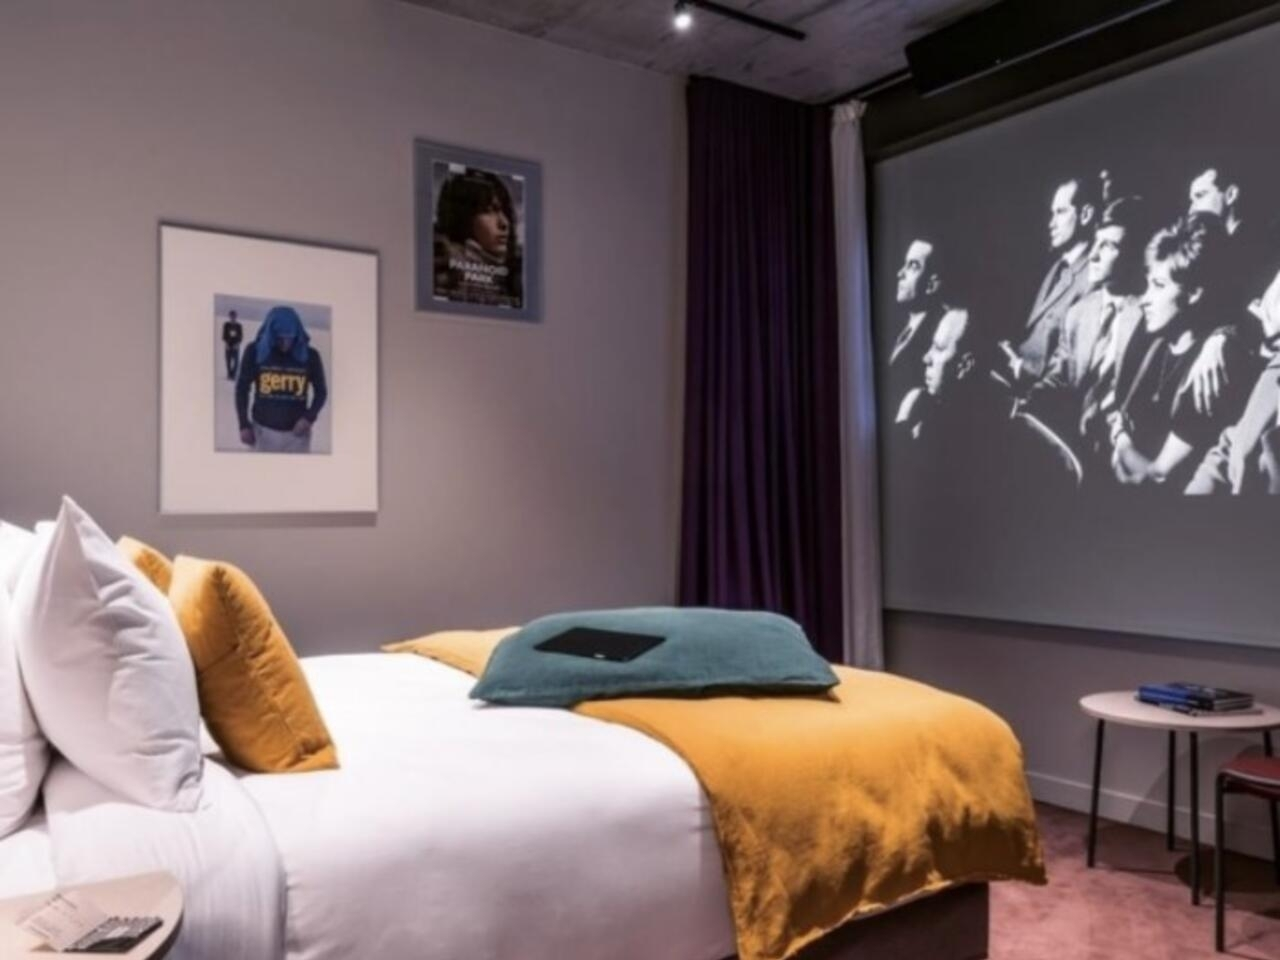 Welcome to the Hotel Paradiso: Europe's first hotel-cinema